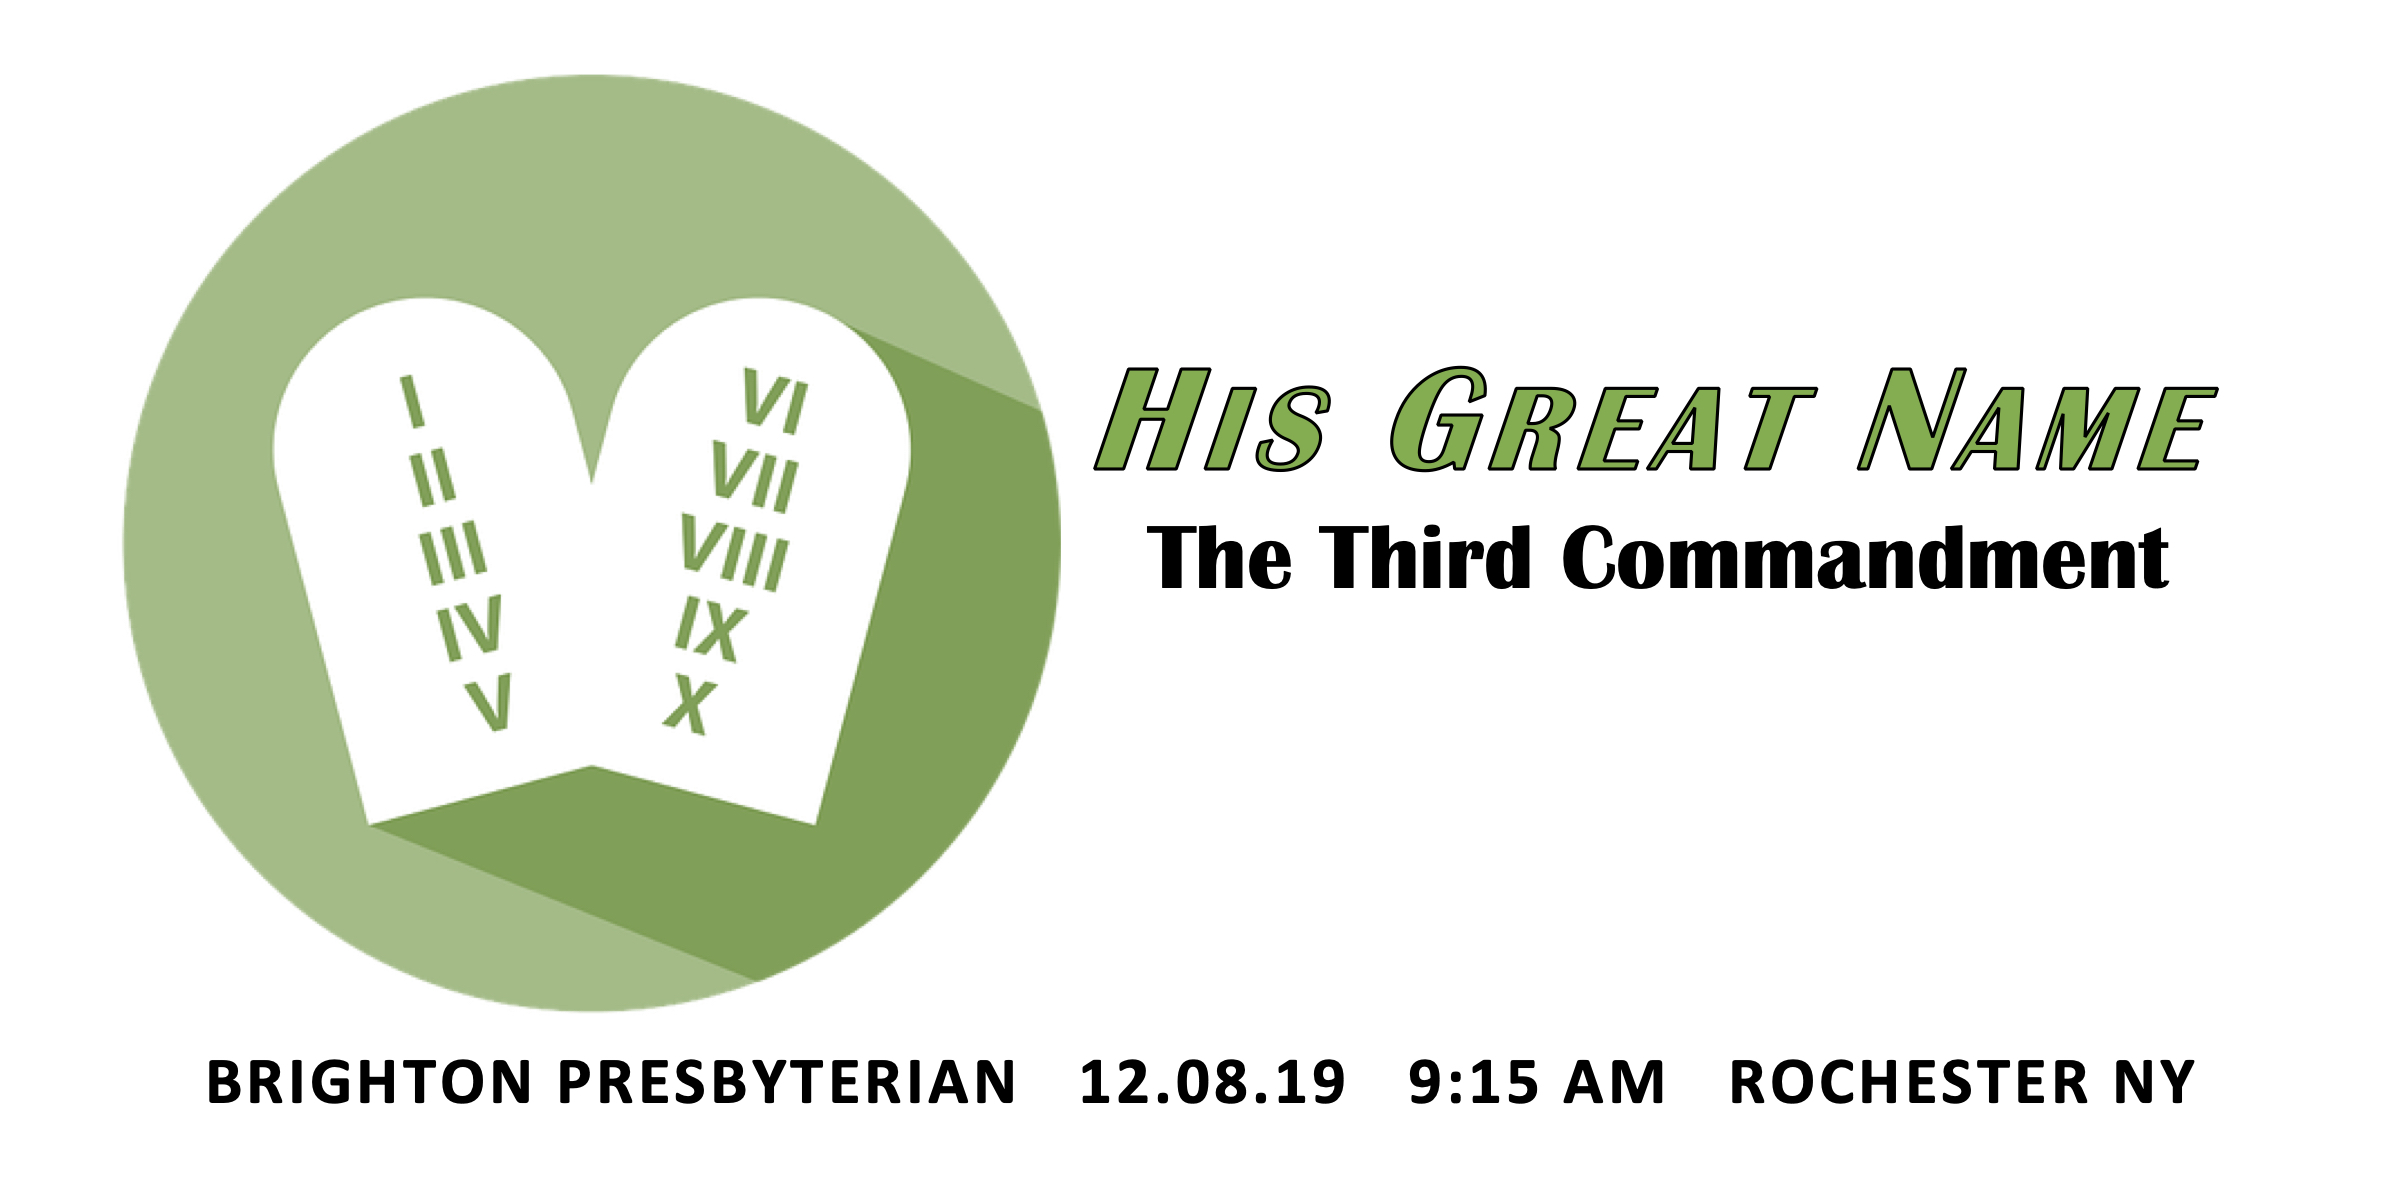 His Great Name: The Third Commandment